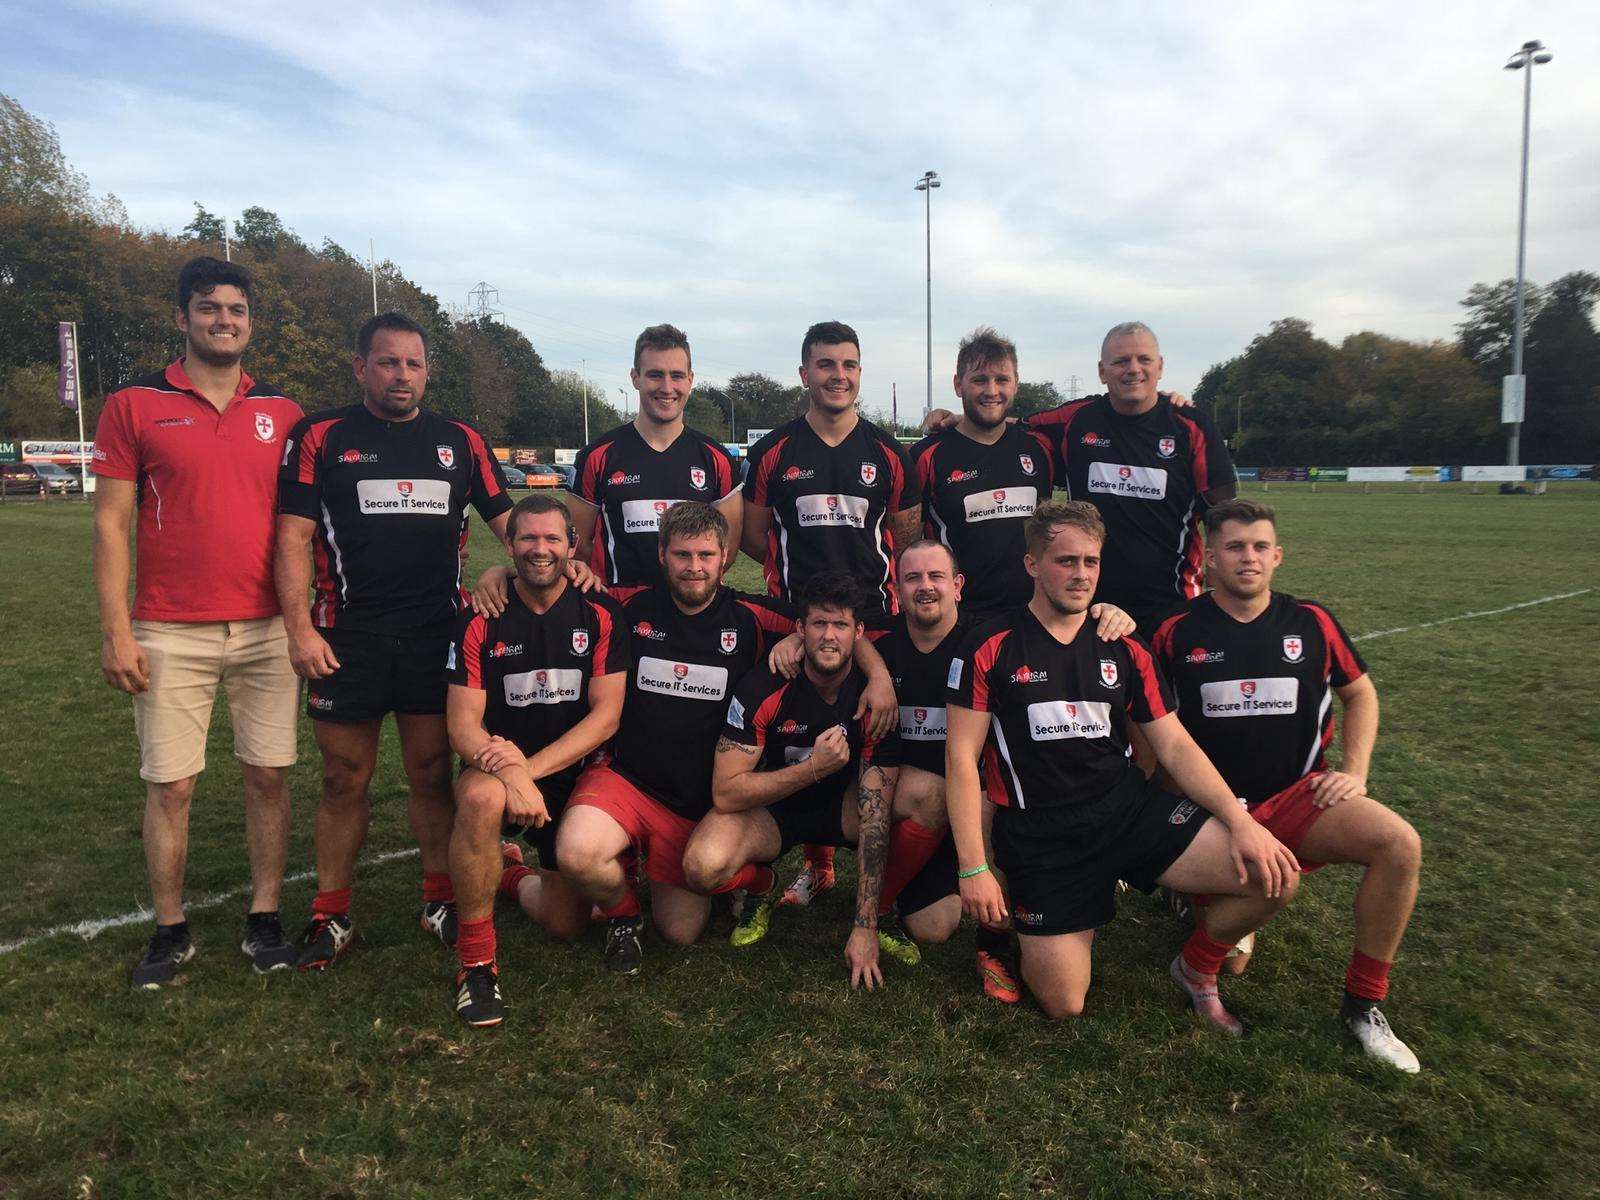 WINNING FEELING: The Halstead Templars second team